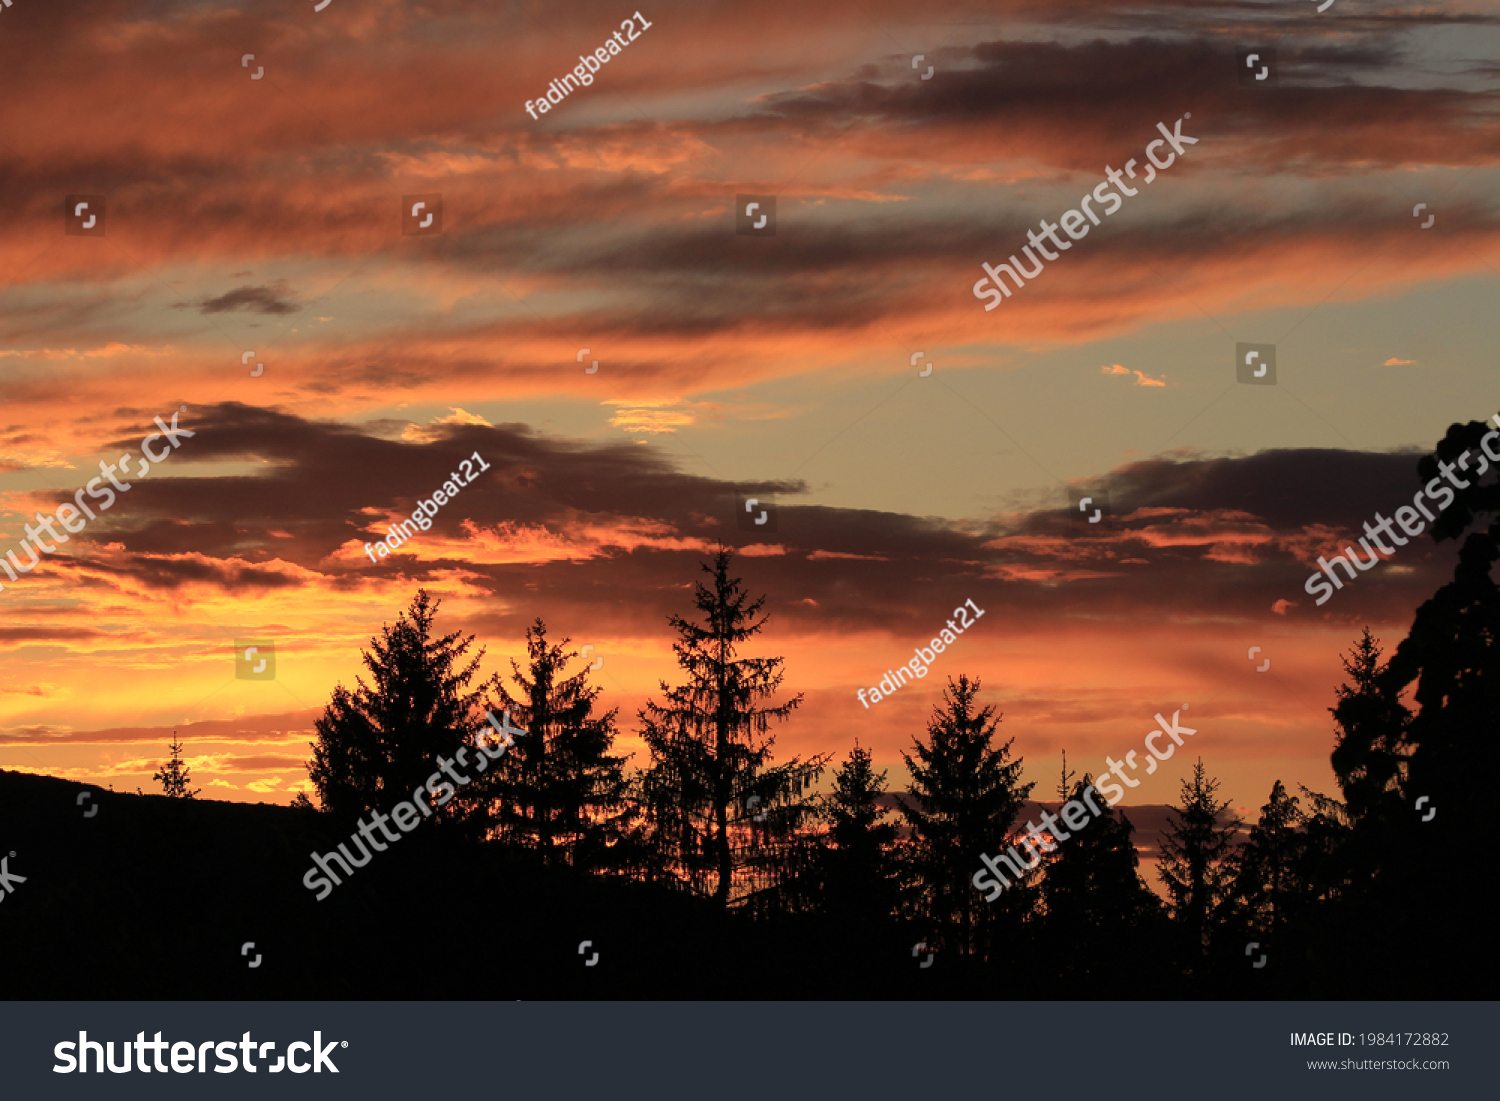 stock-photo-a-colorful-sunset-sky-pine-t